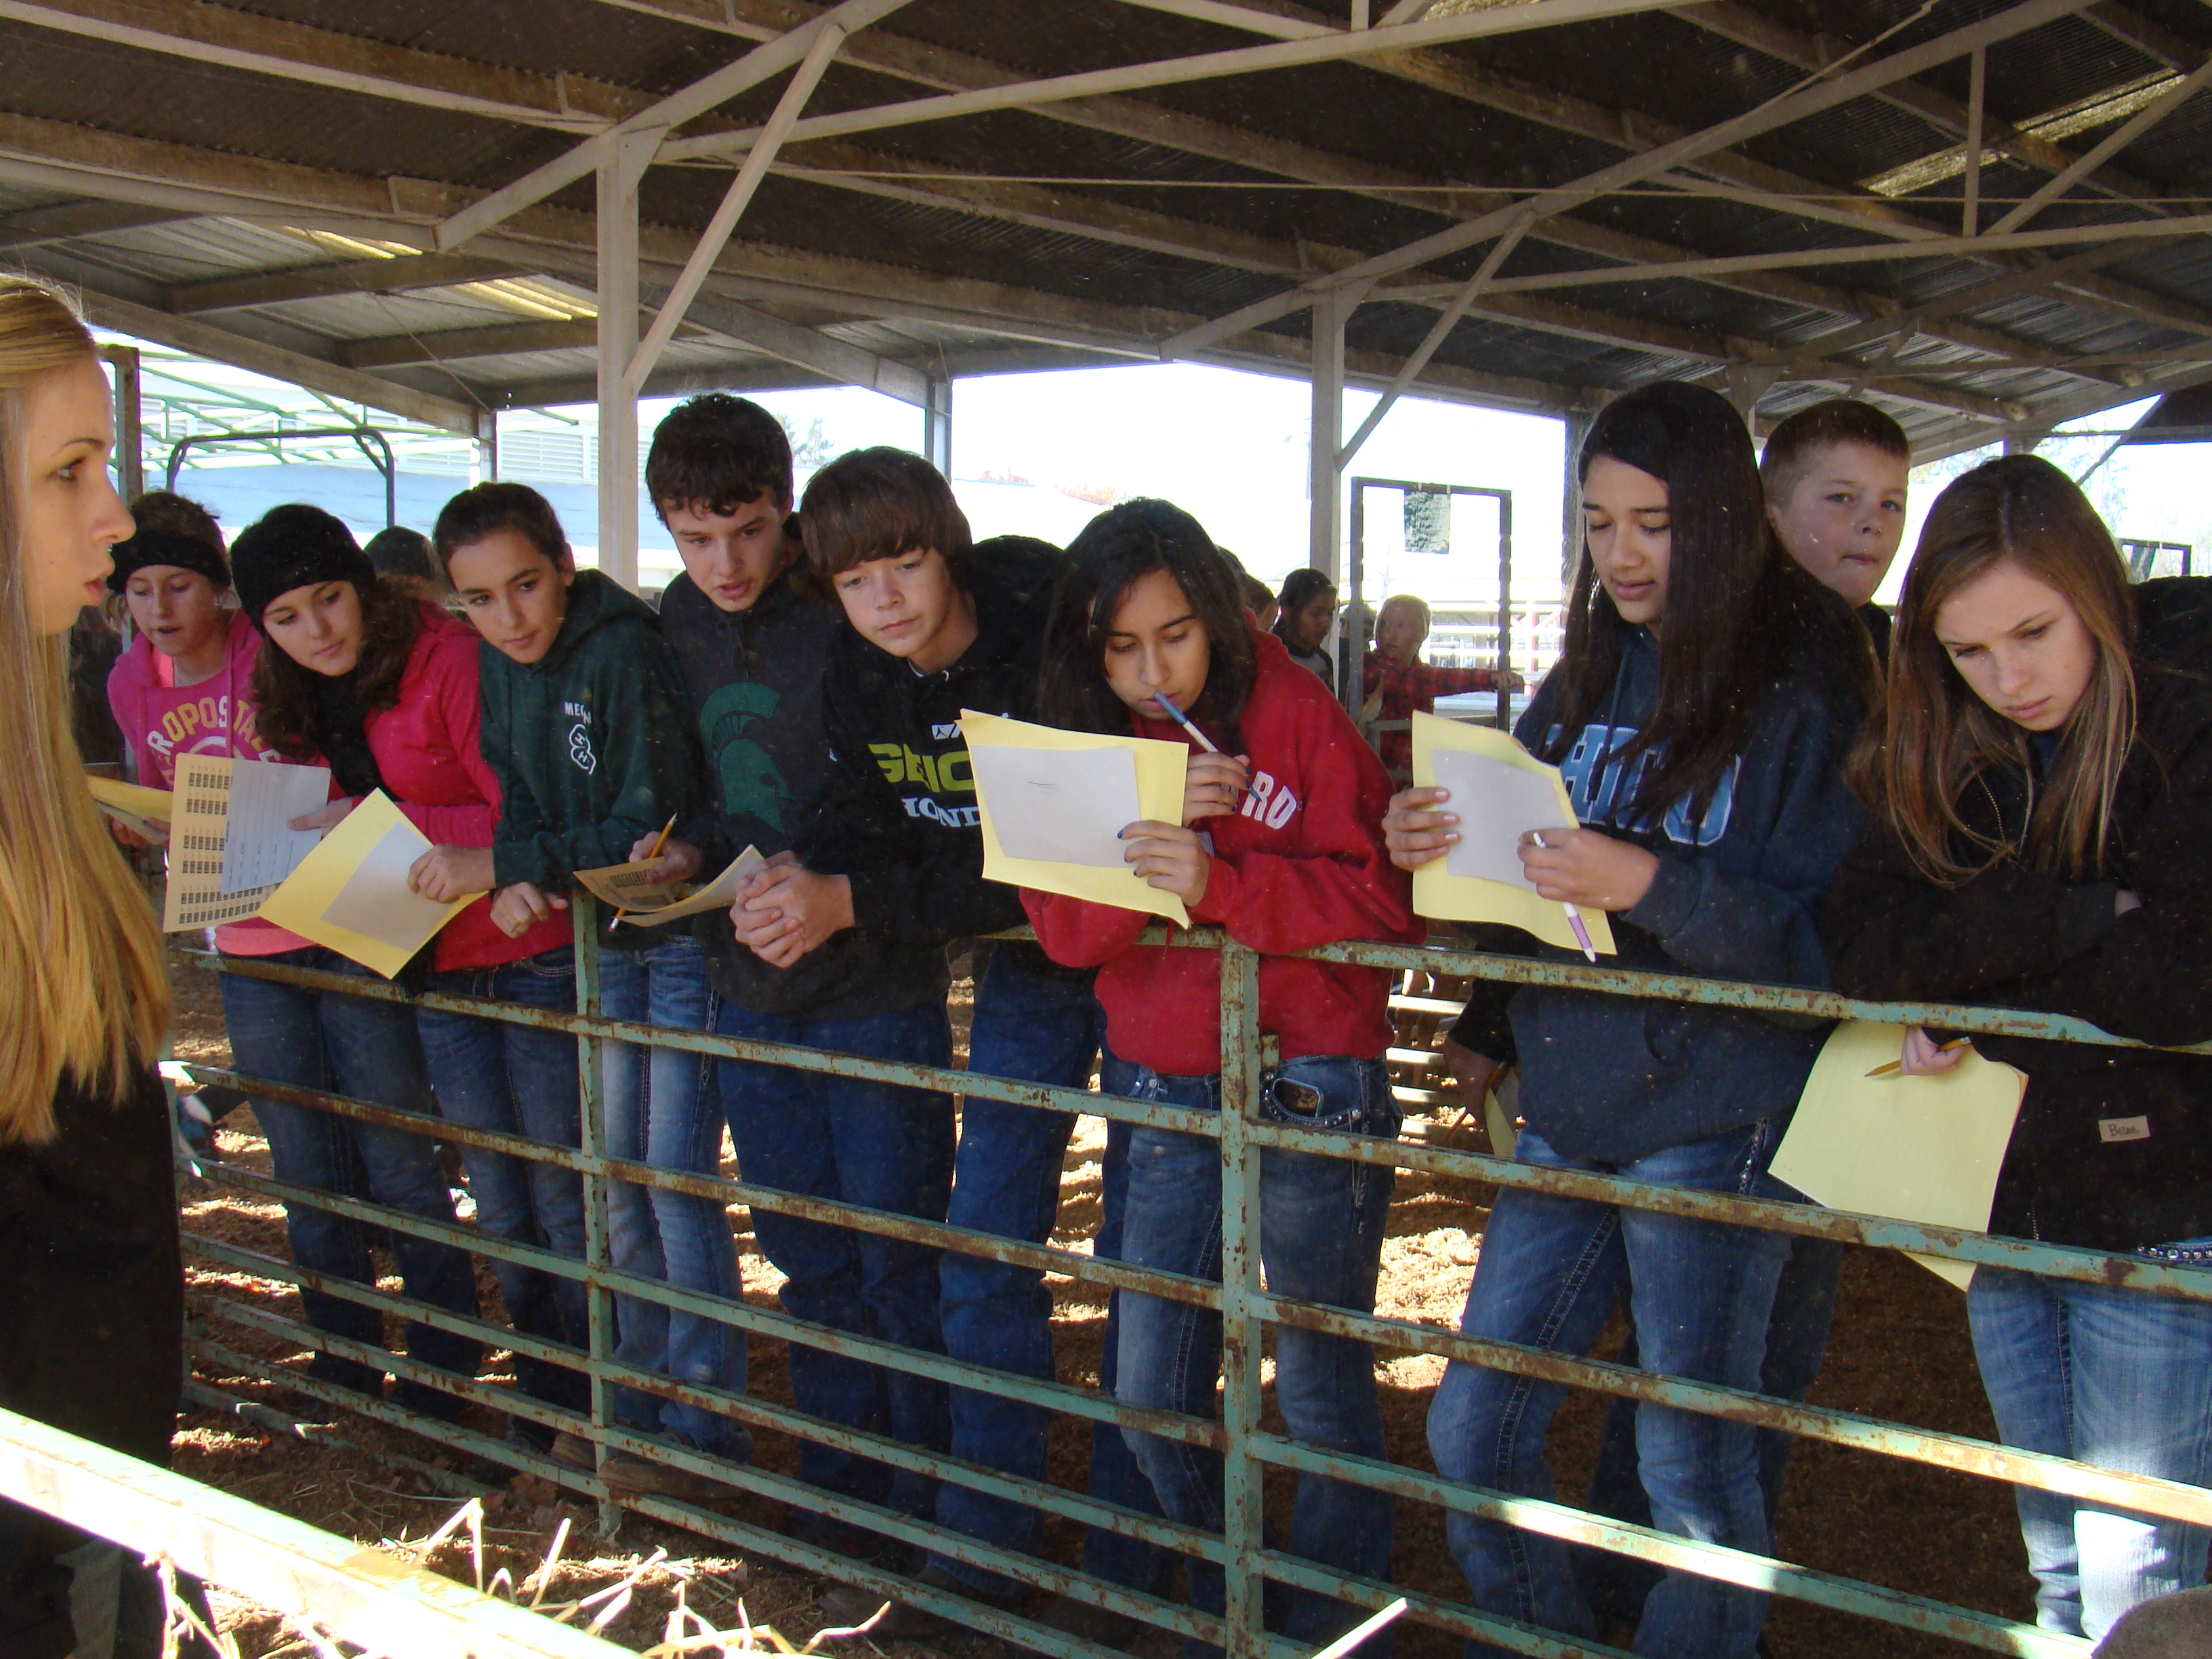 Glenn County Youth Judging at Livestock Field Day Event